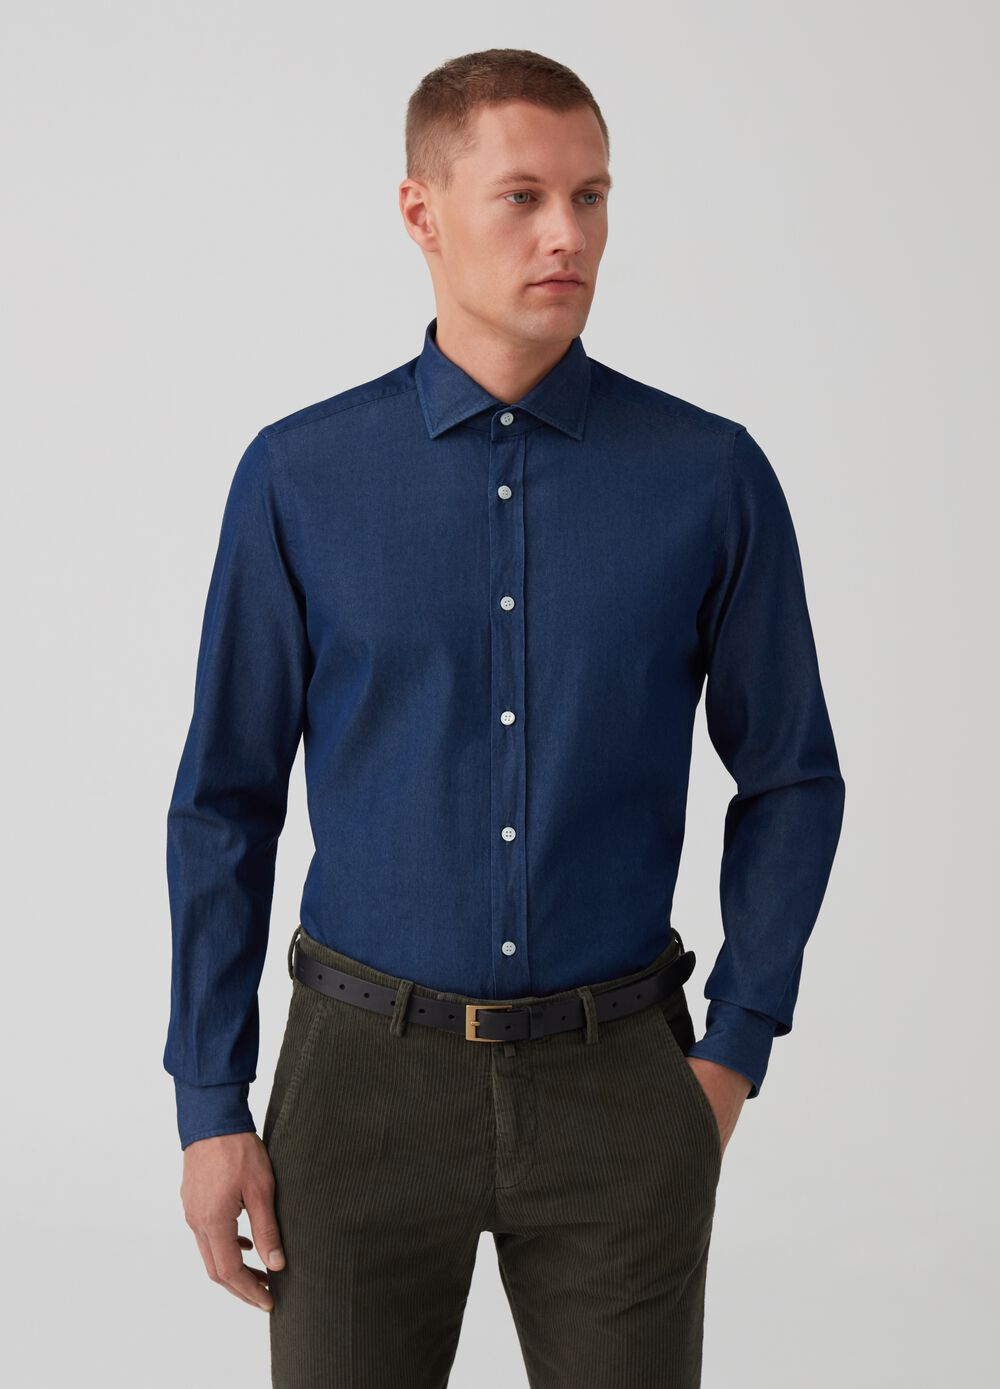 Rumford shirt in denim-effect cotton